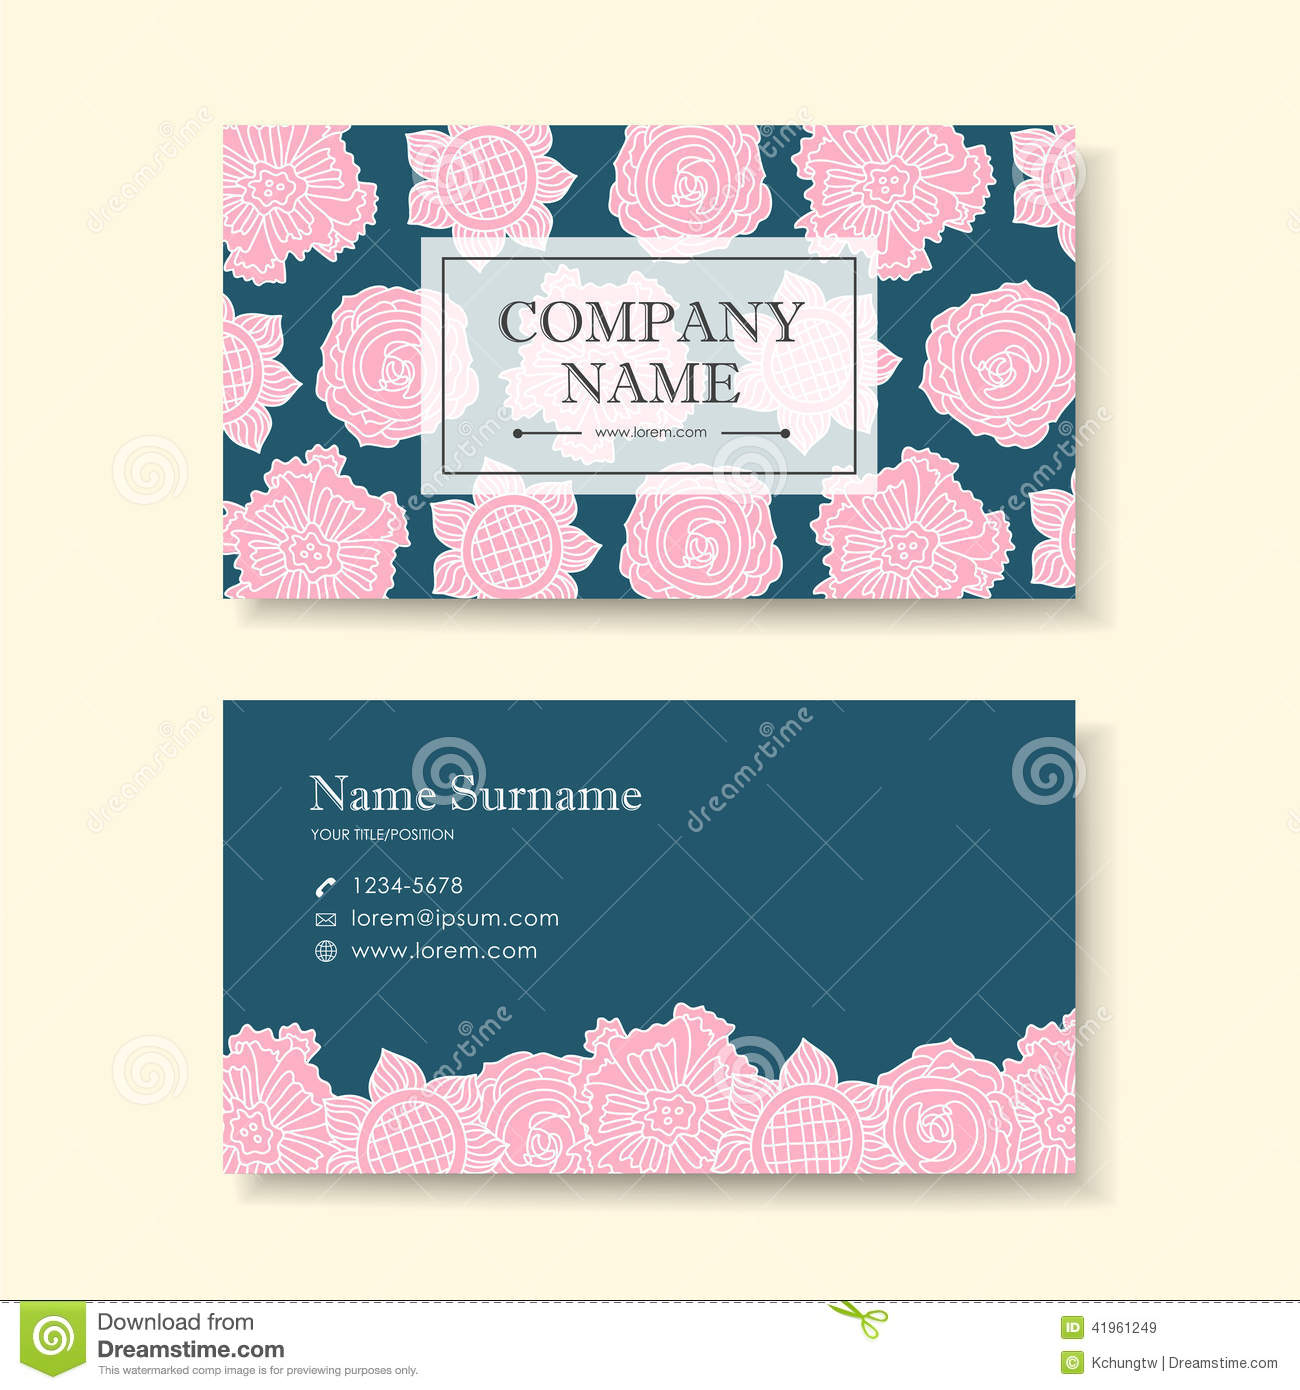 flower business cards - Mado.sahkotupakka.co